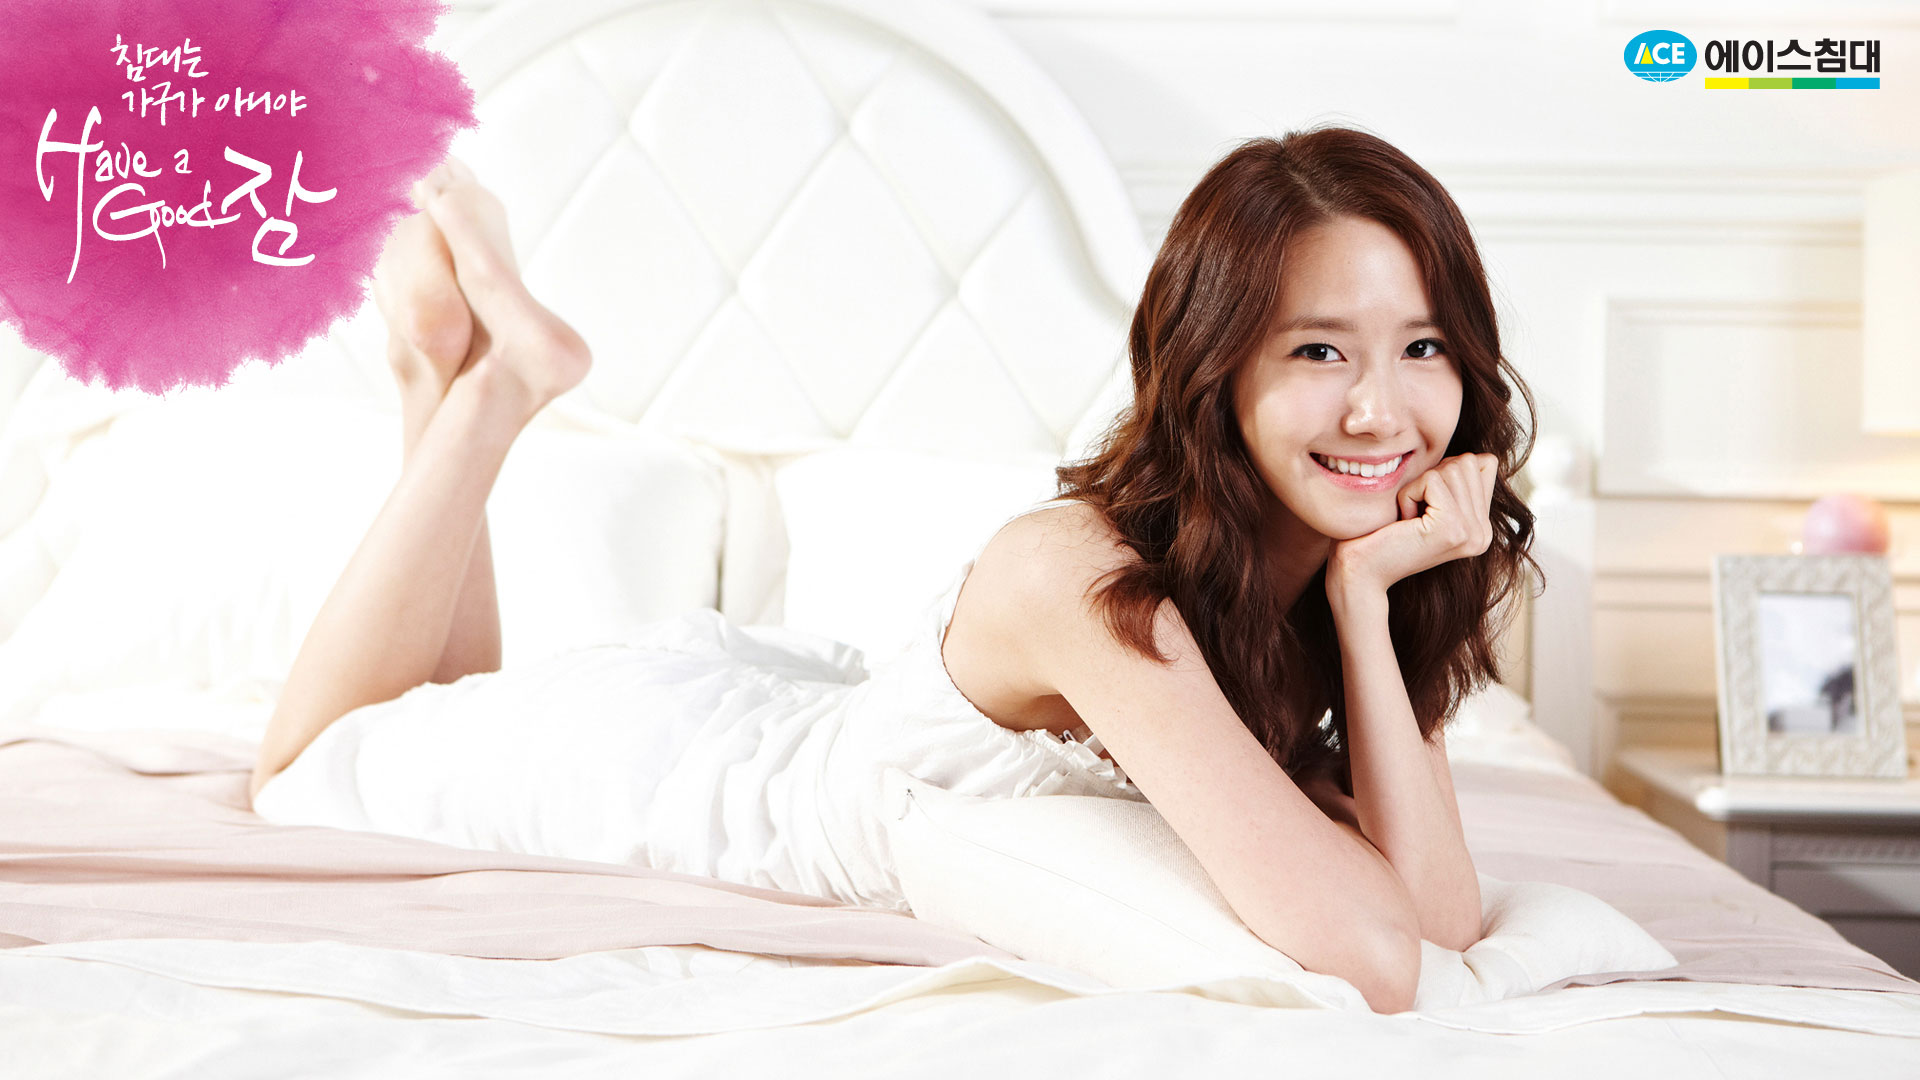 SNSD Yoona Ace Bed wallpaper